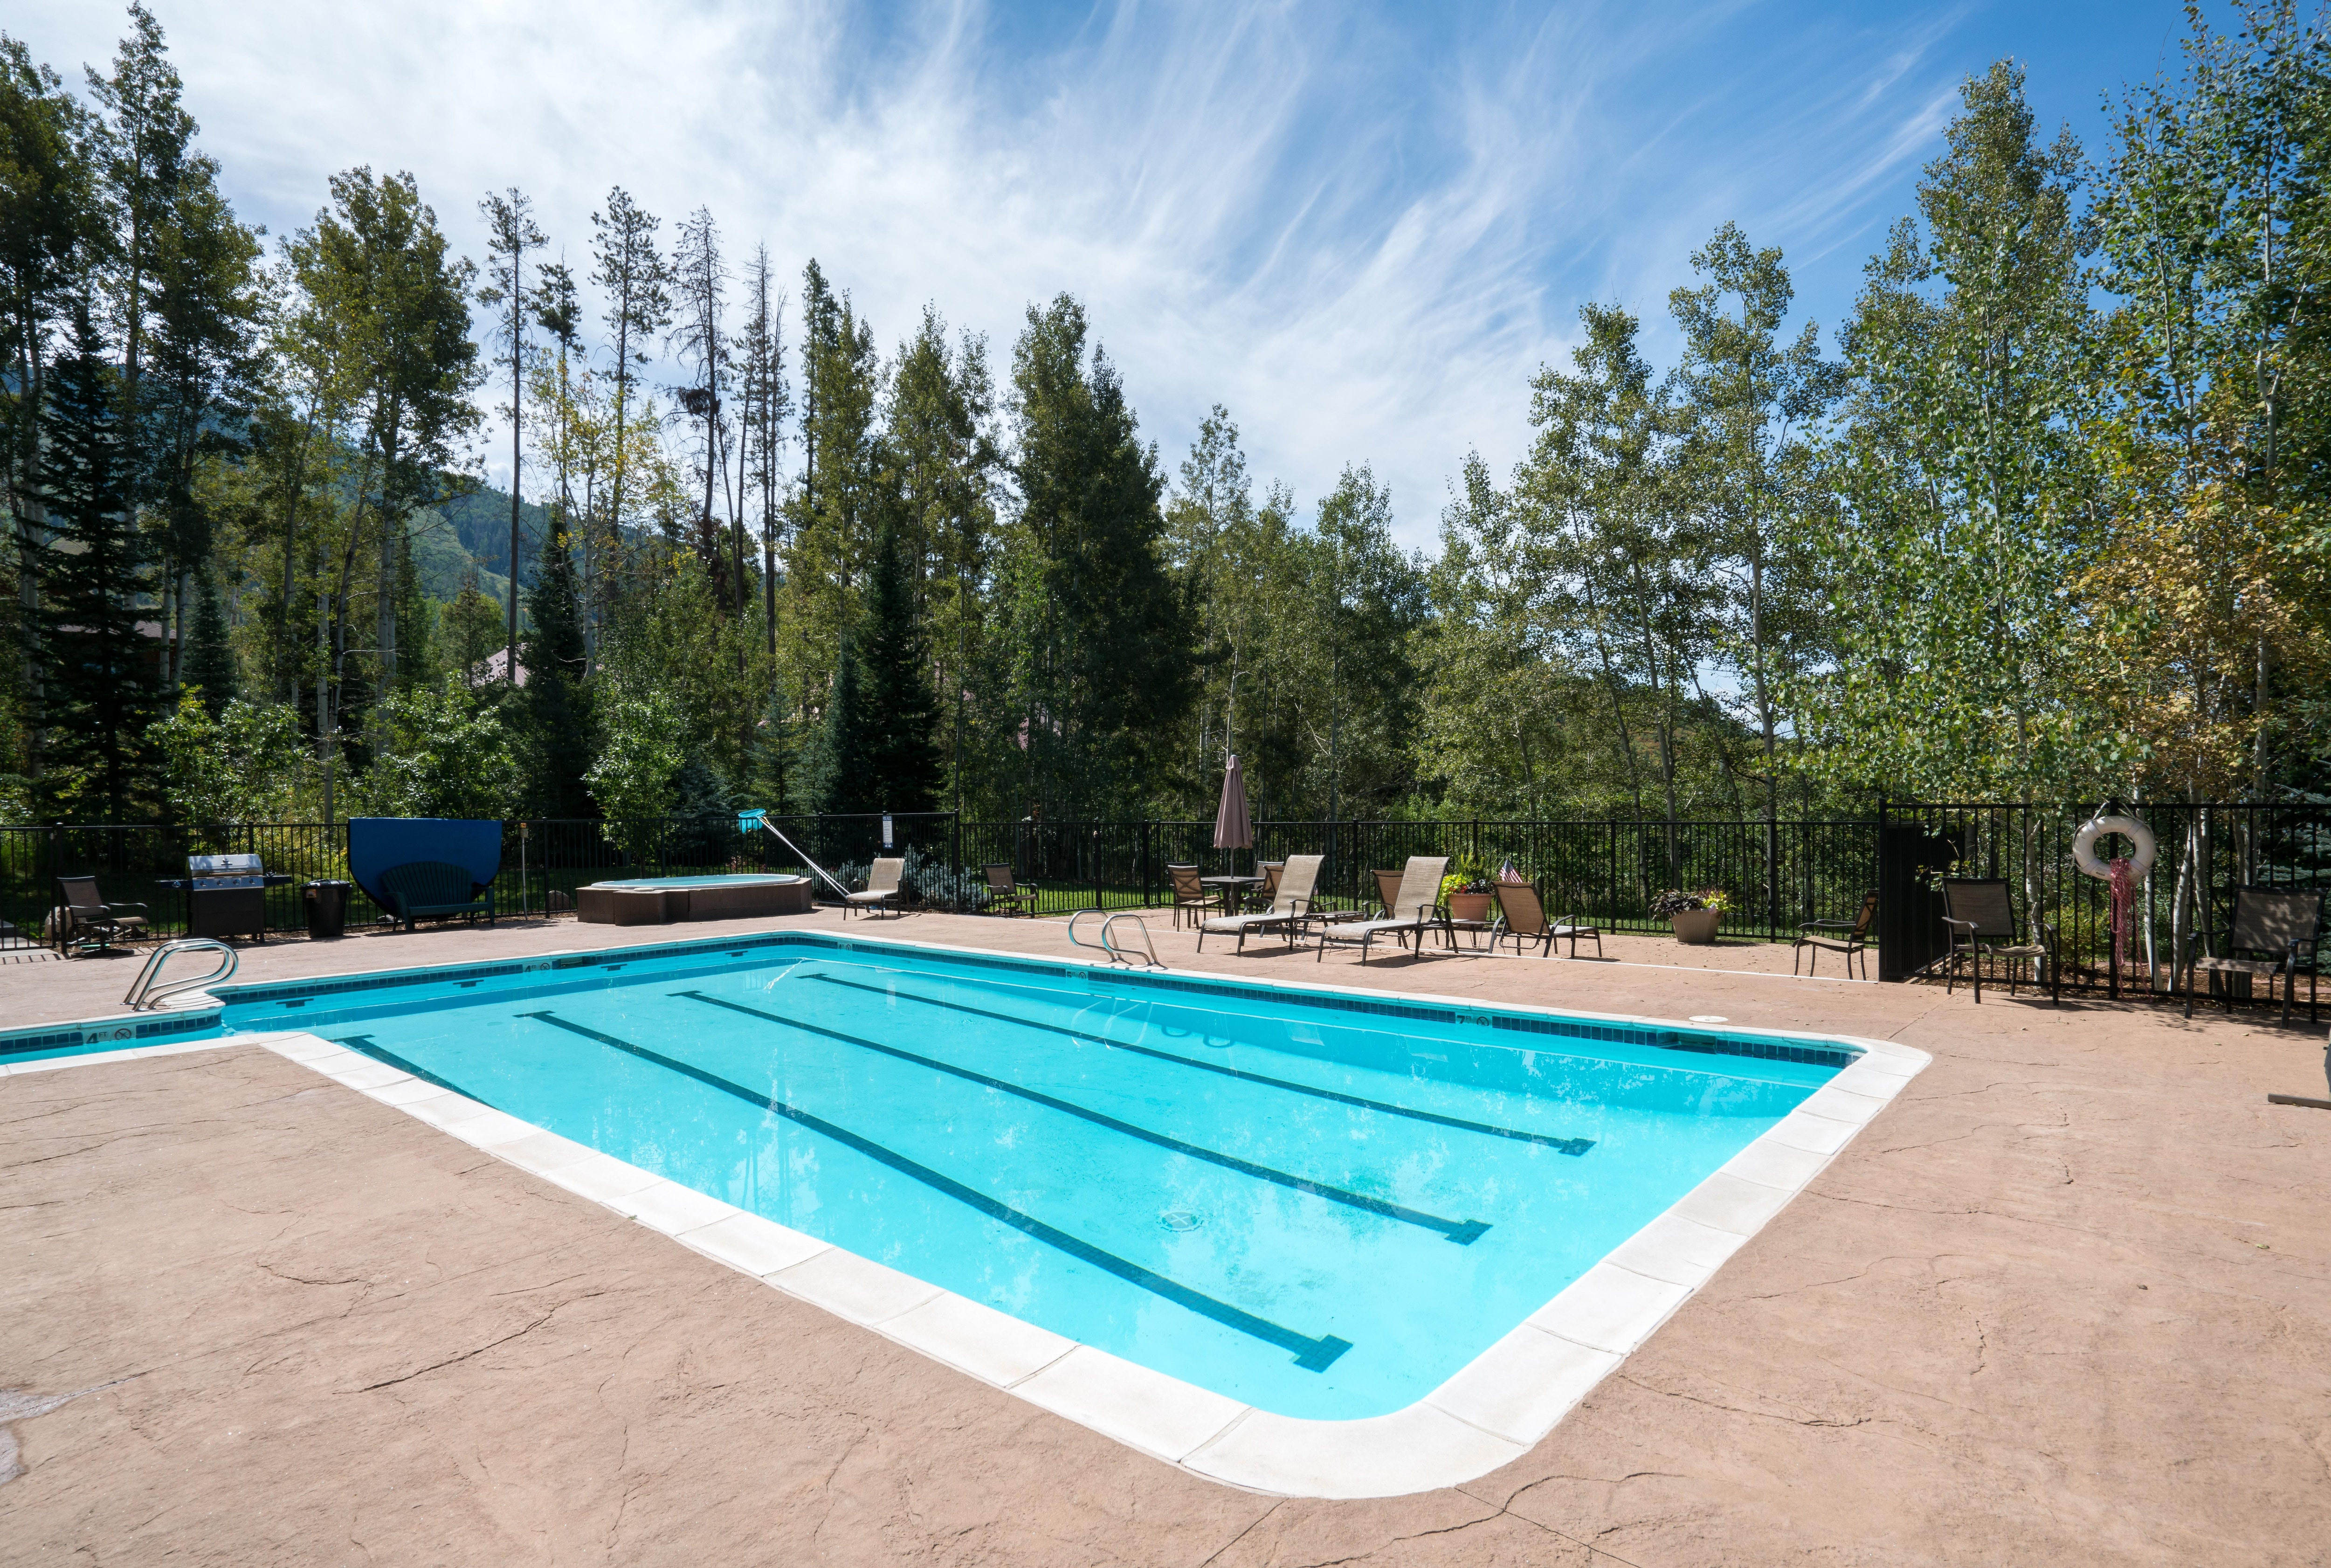 Come swim some laps while surrounded by peaceful pines.